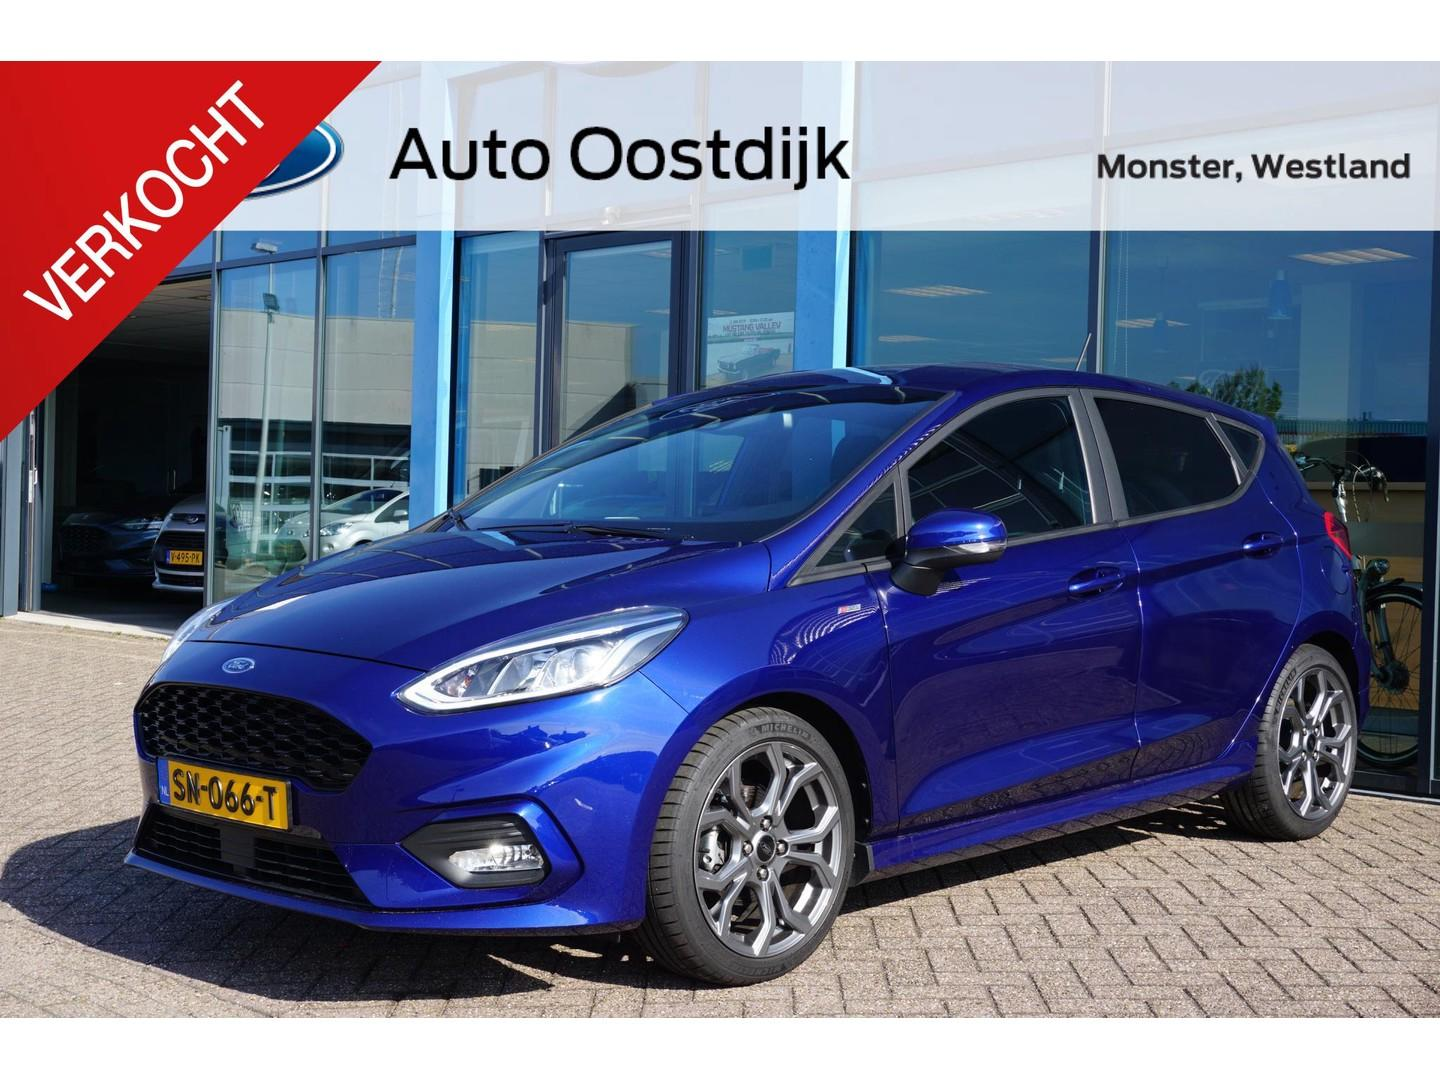 Ford Fiesta 1.0 ecoboost st-line 100pk navi climate voorruitverwarming cruise control privacy glass dagrijverlichting